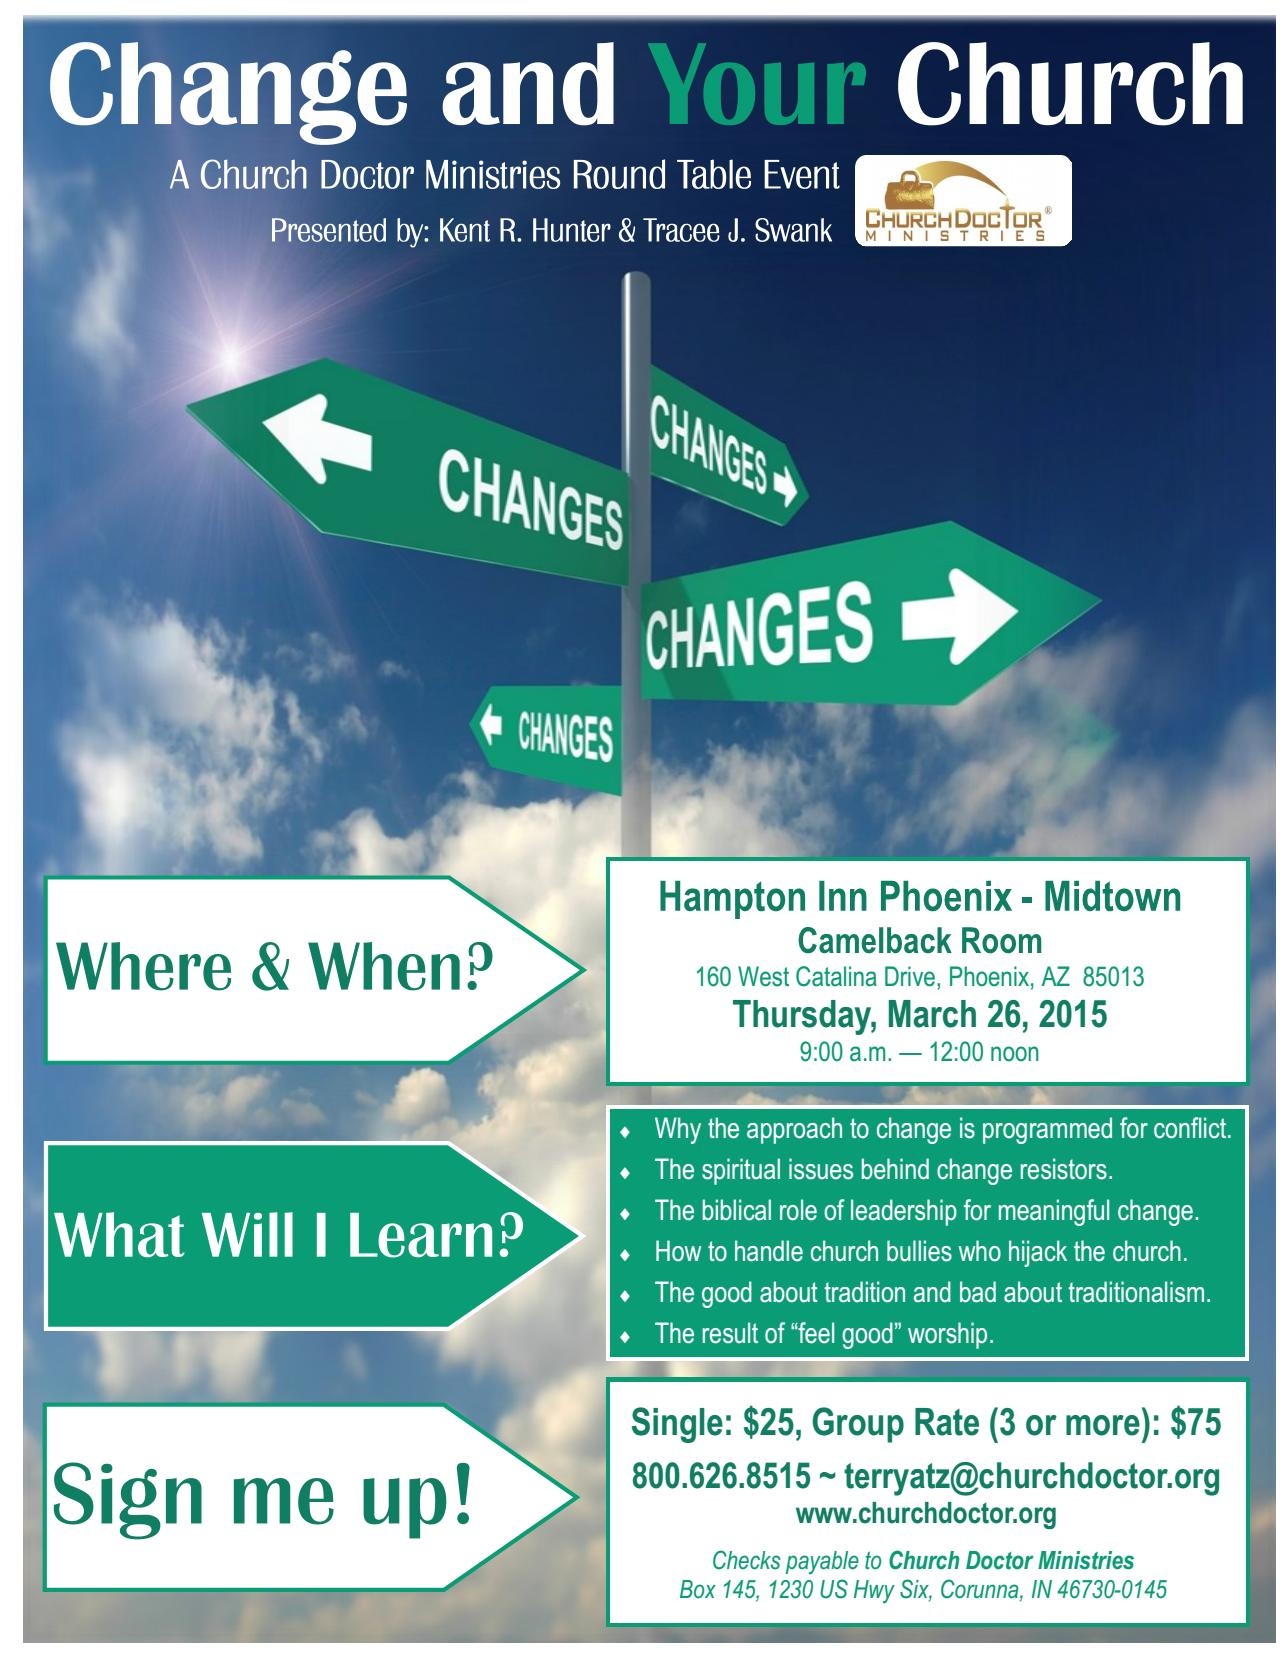 Change and YOUR Church Round Table Discussion – March 26, 2015 – Phoenix, AZ